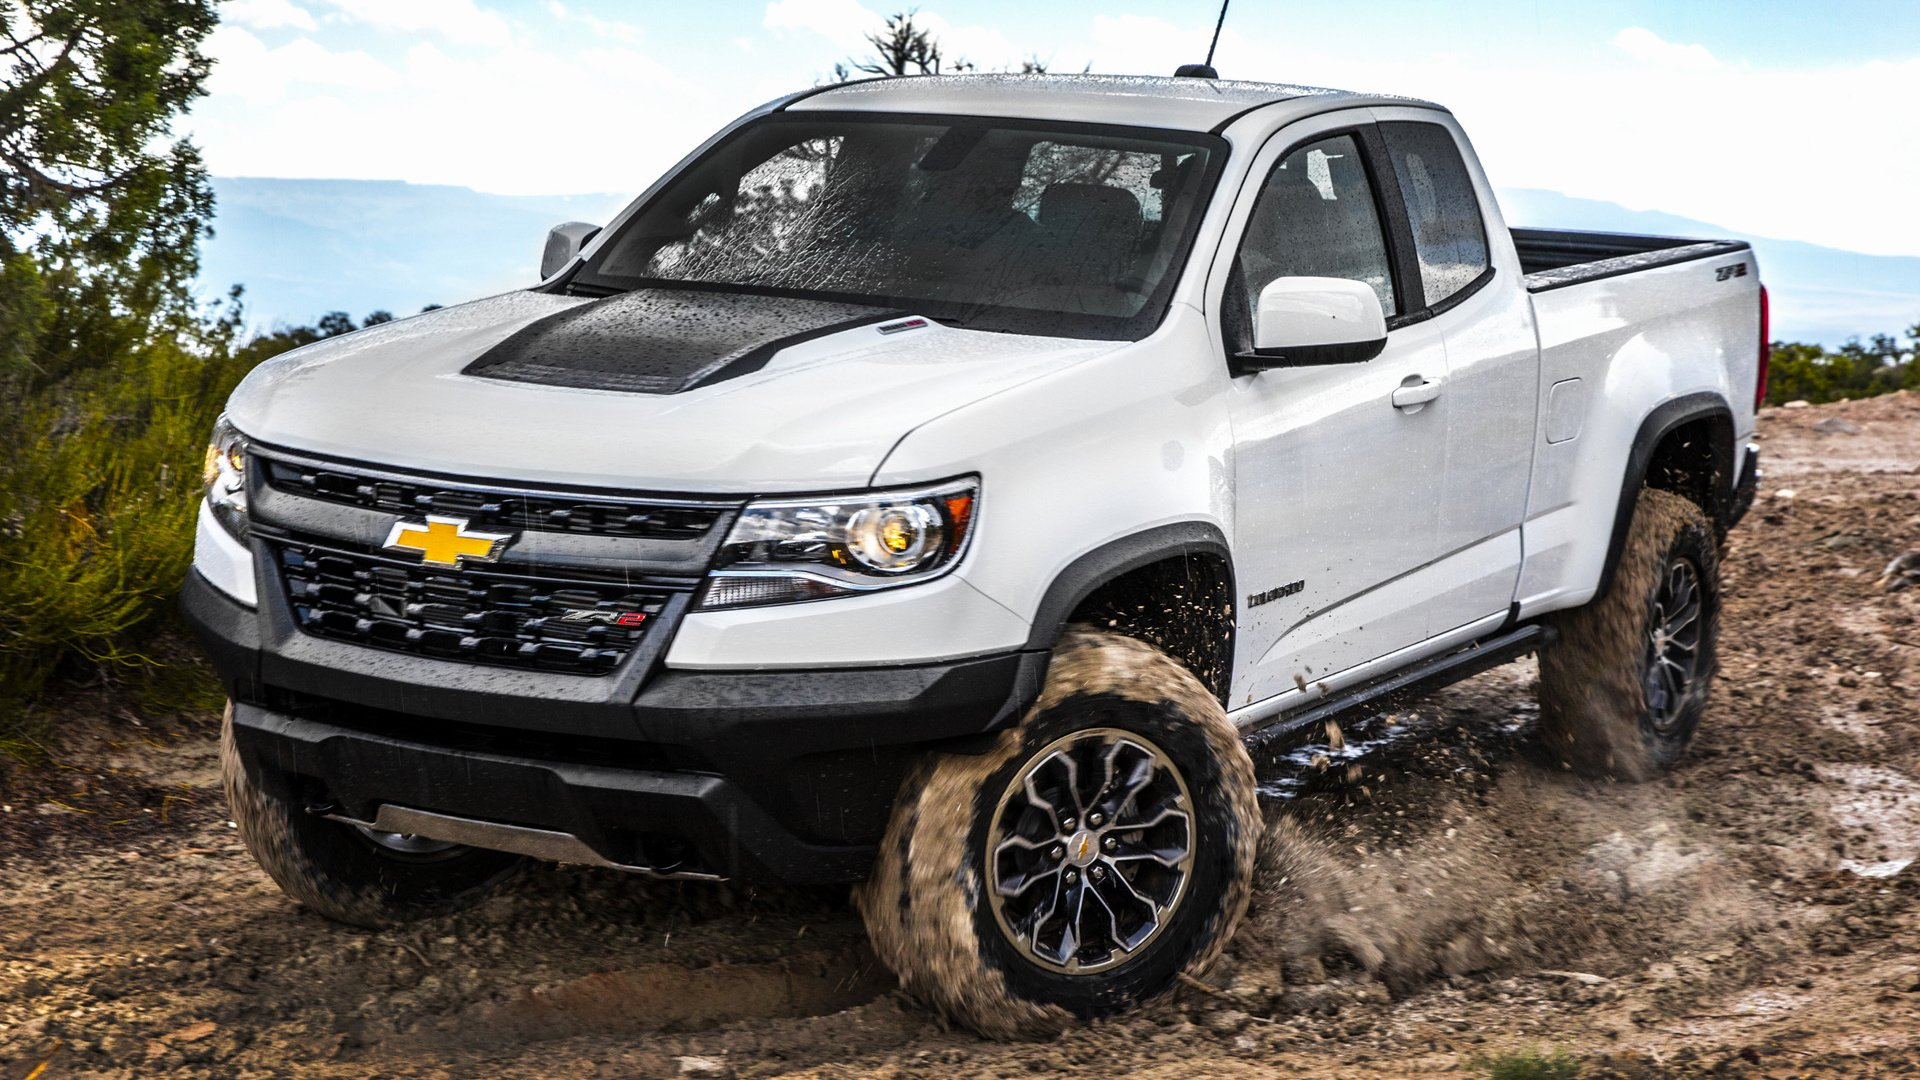 Vehicles - Chevrolet Colorado  Chevrolet Colorado ZR2 Pickup Off-Road White Car Car Wallpaper